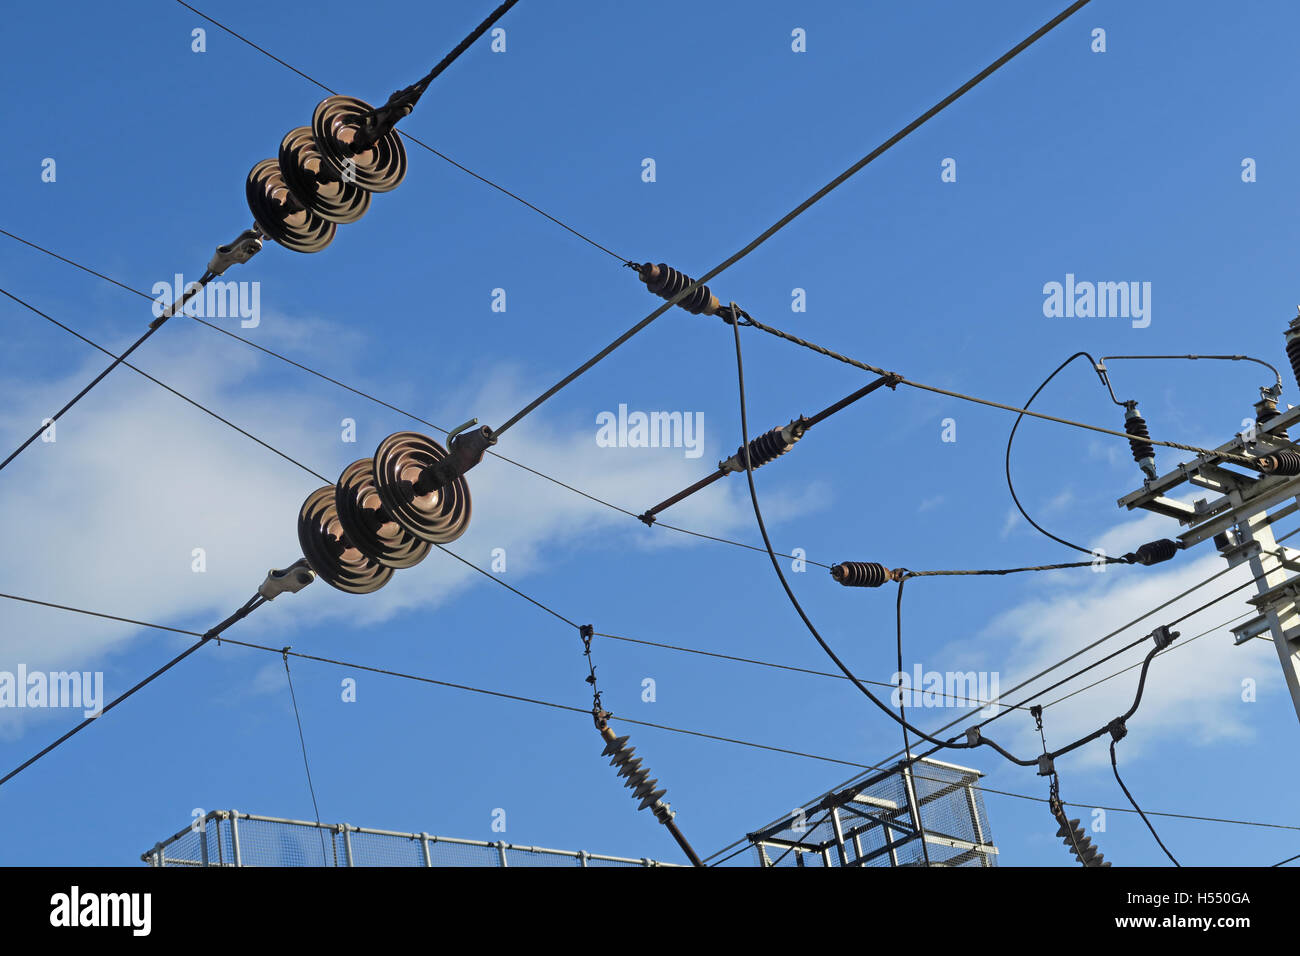 Overhead lines & insulators, electric train line,WCML,England,UK Stock Photo